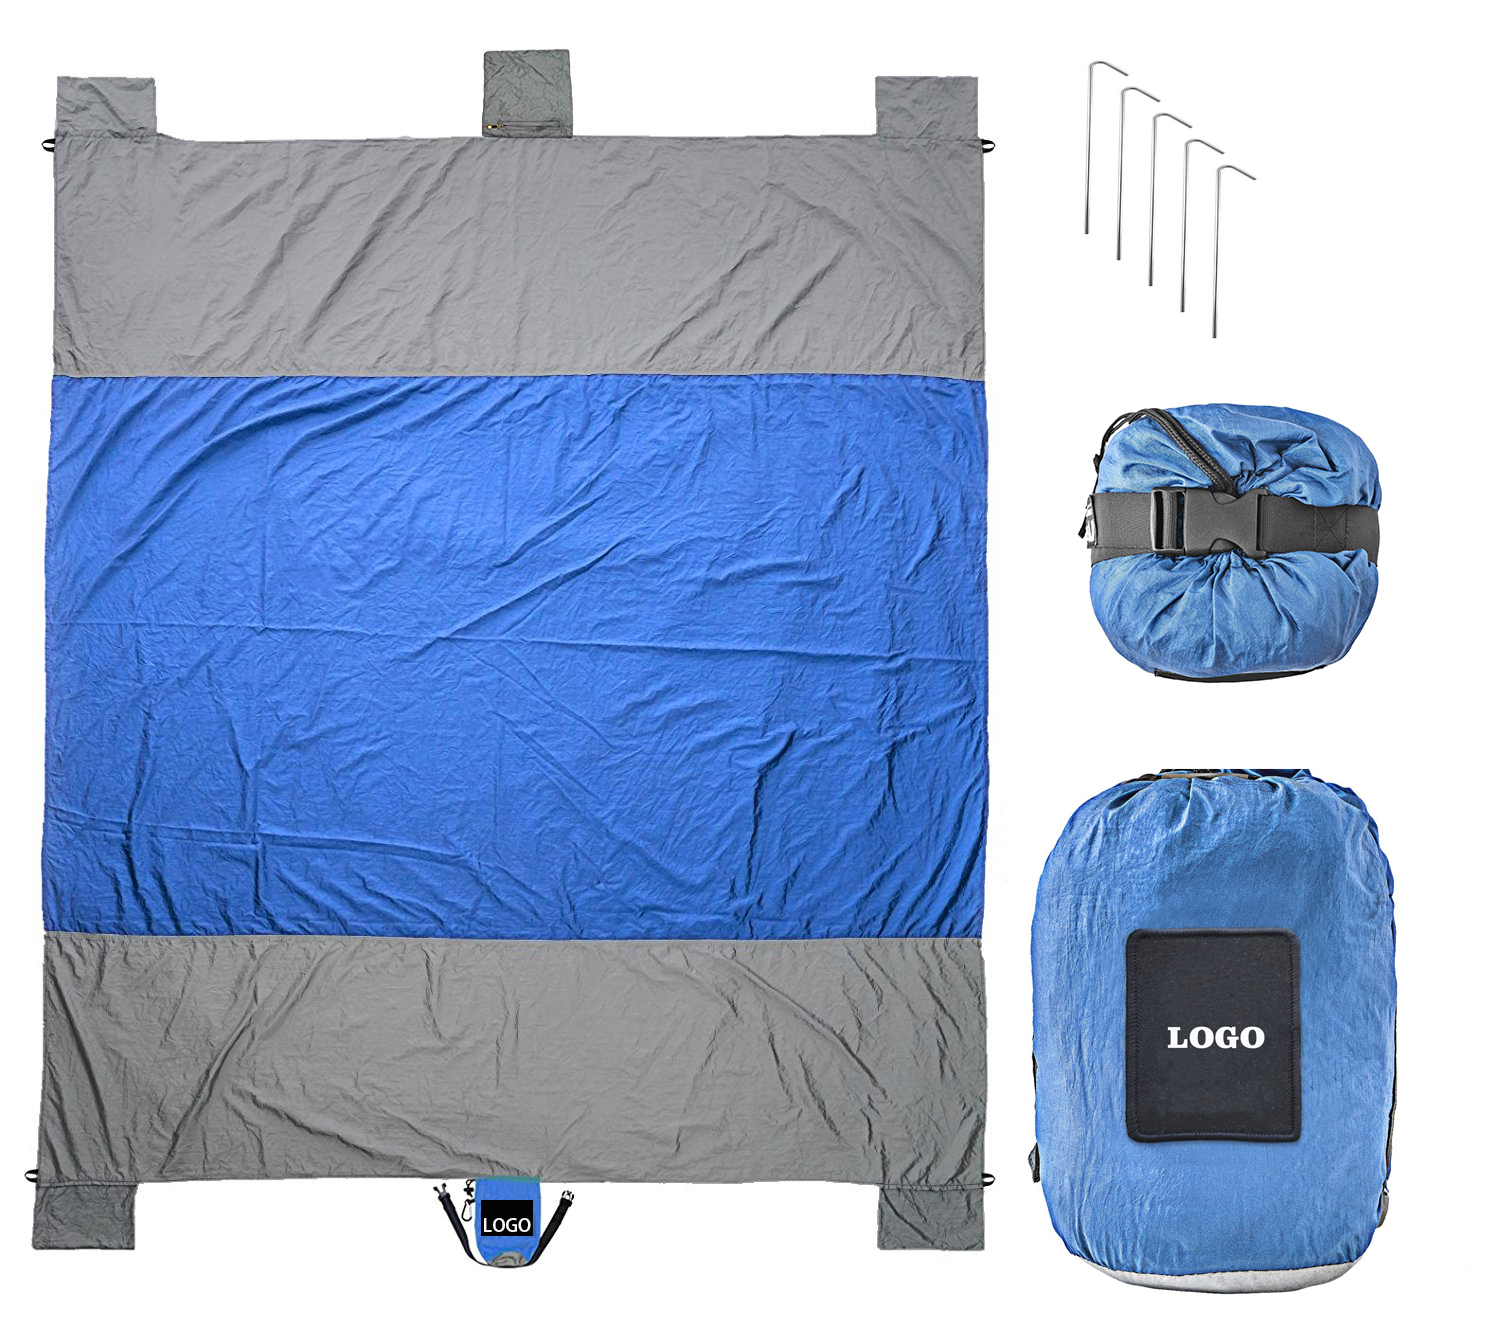 Sand Free Nylon Material Compact Outdoor Beach Blanket For Camping Travel